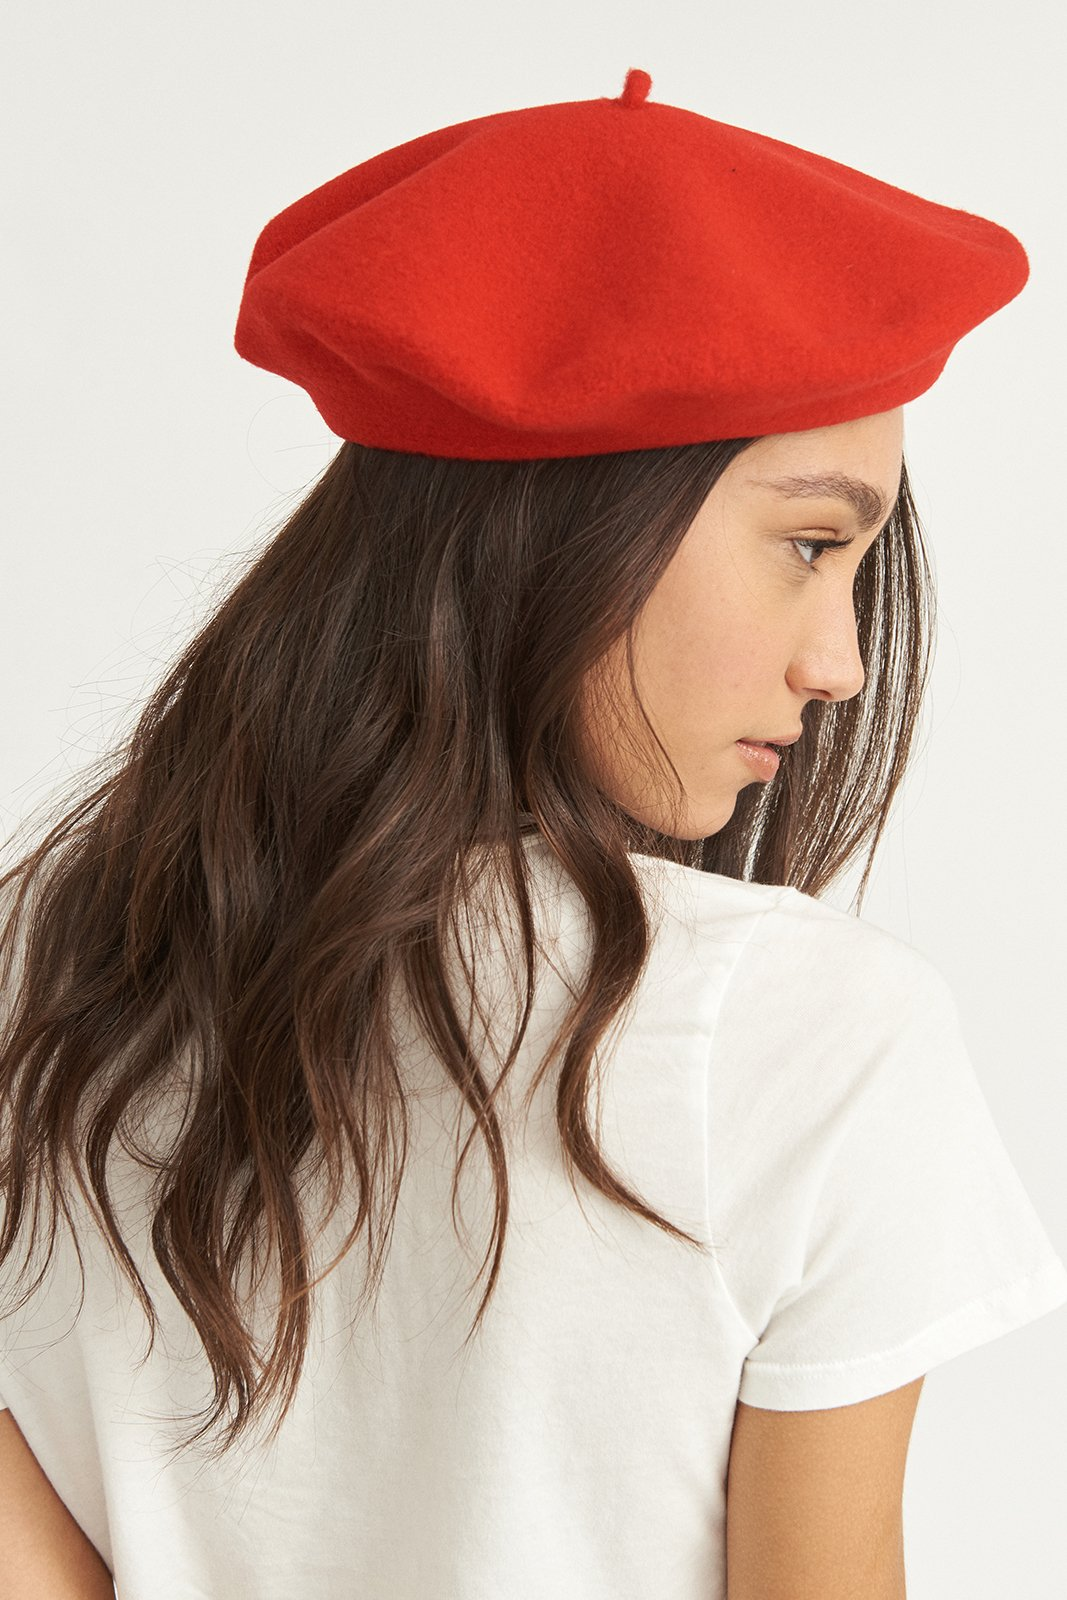 Antidote Wool Beret $43